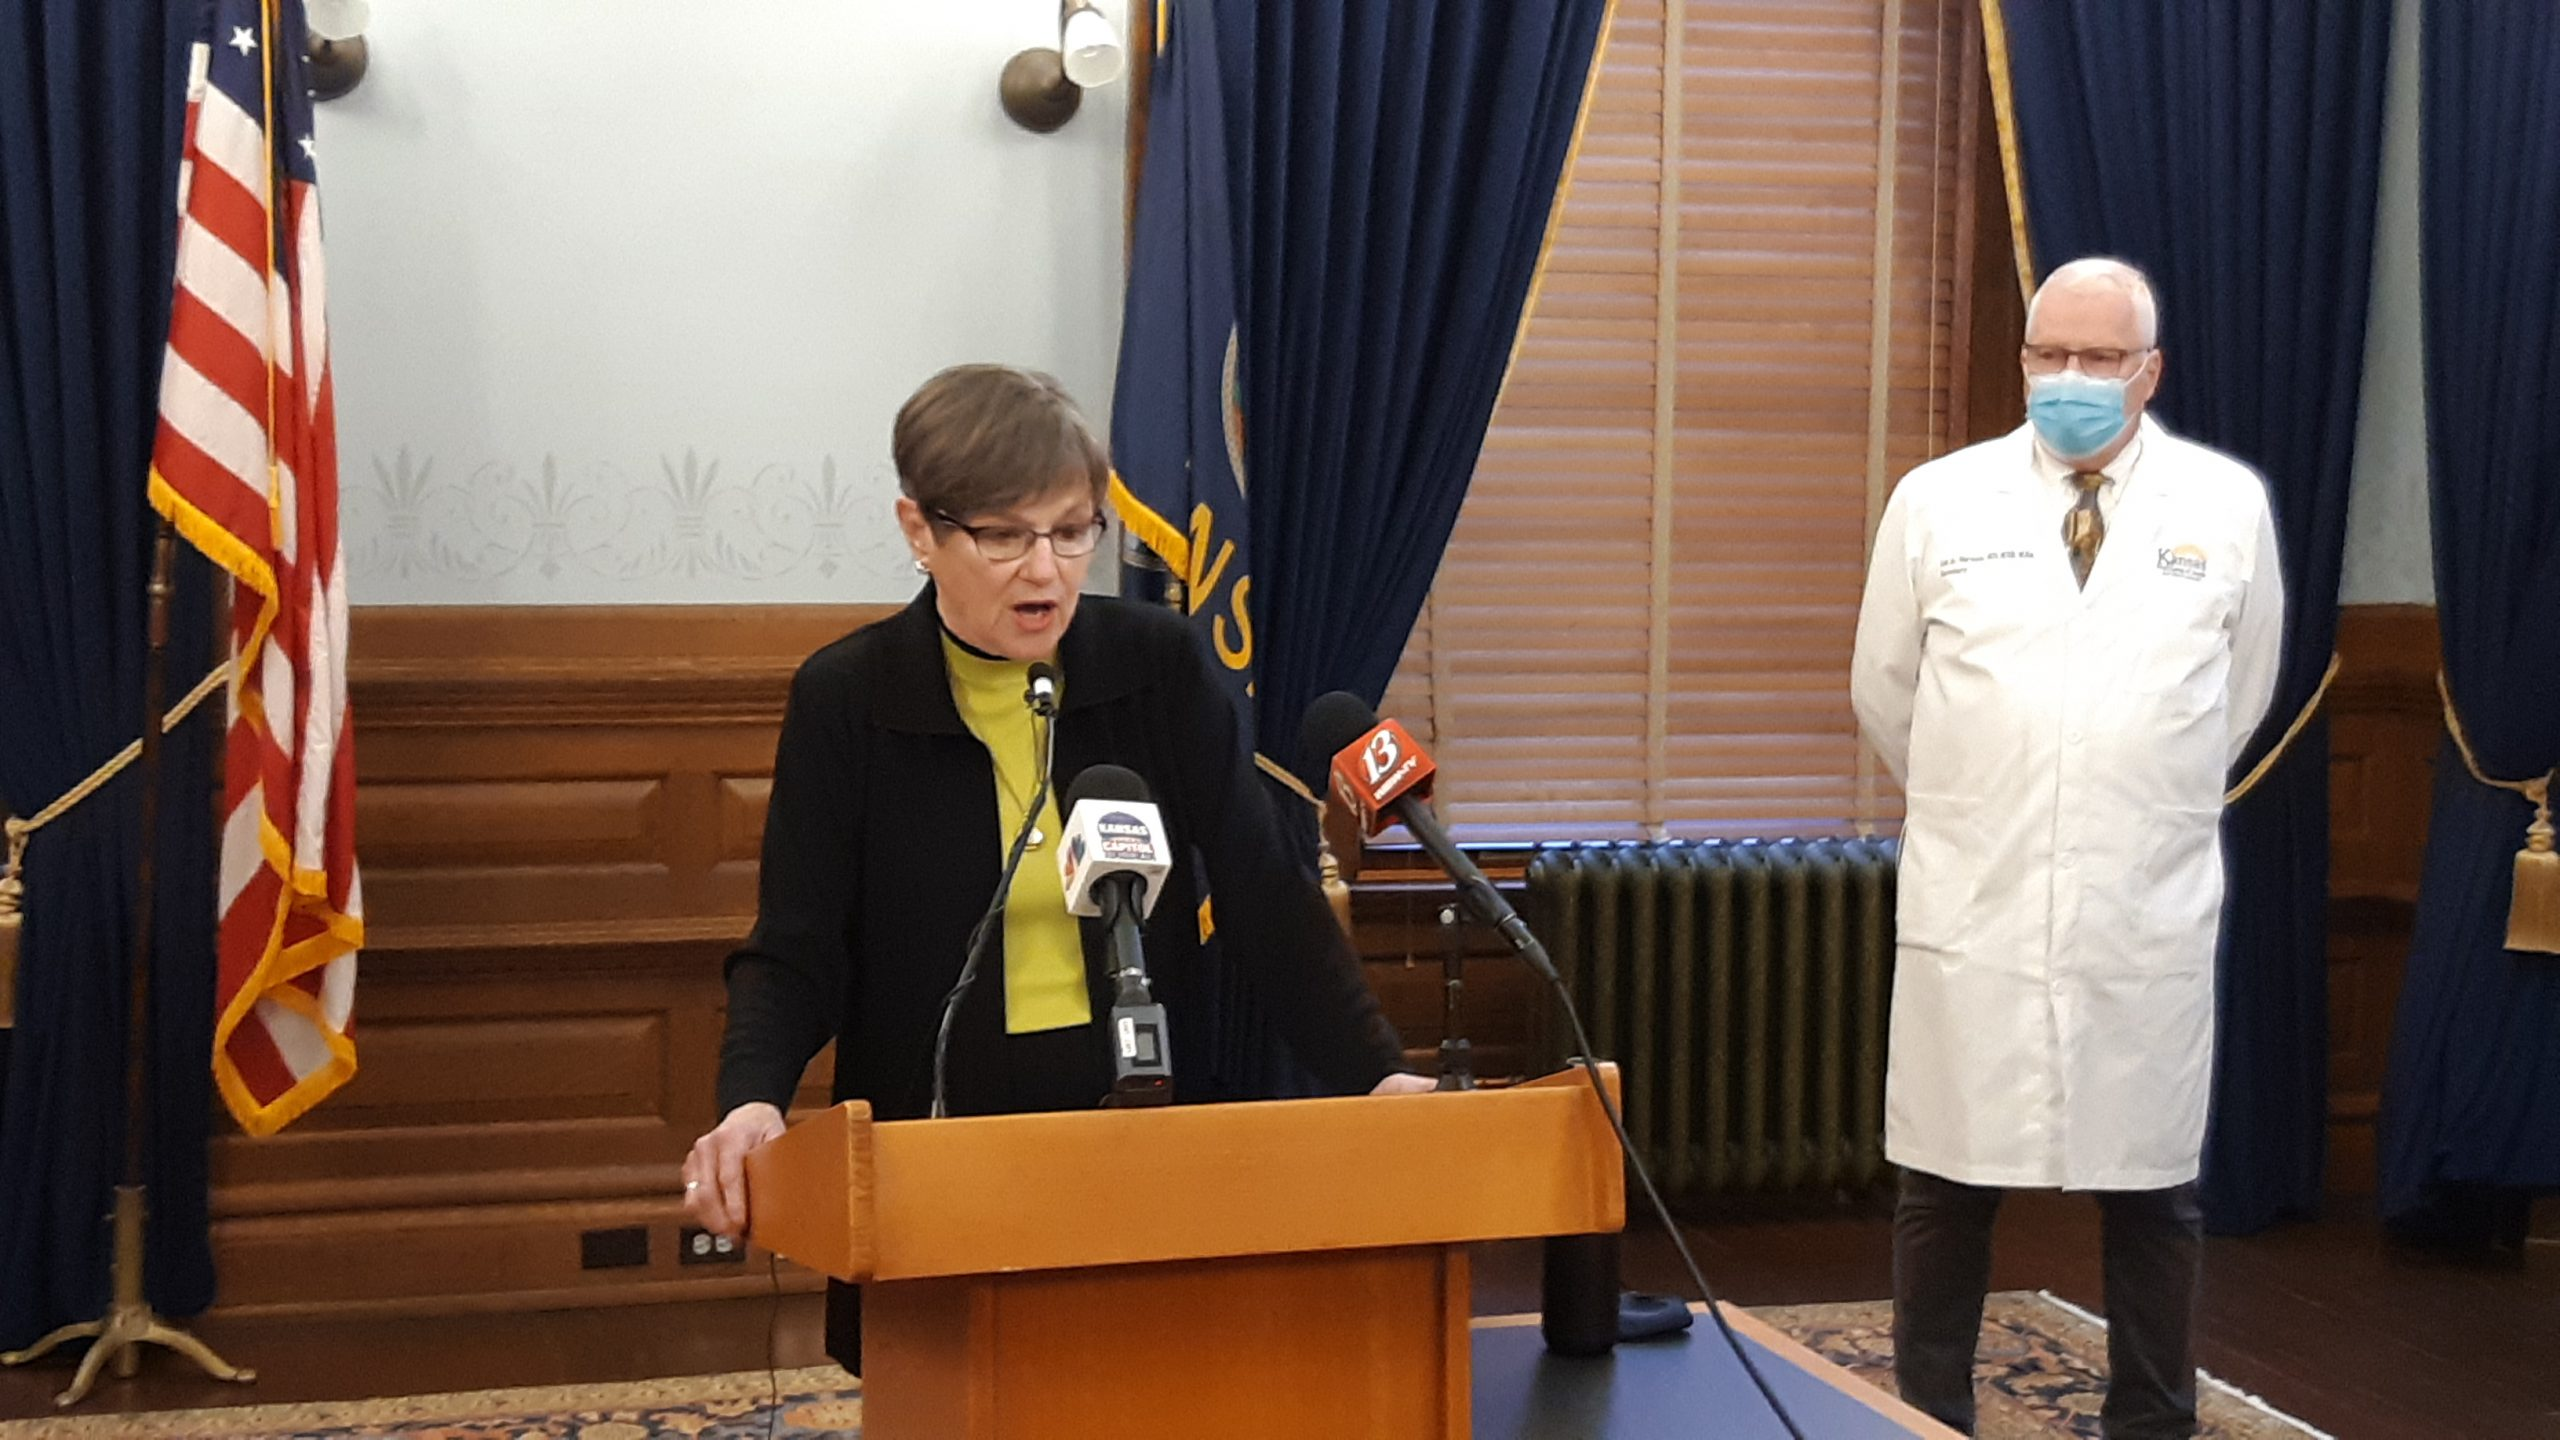 Gov. Laura Kelly said the Kansas Department of Labor paid out an estimated $290 million in fraudulent unemployment claims in the COVID-19 pandemic year of 2020, including $140 million from the state's trust fund and $150 million in temporary federal assistance. (Tim Carpenter/Kansas Reflector)